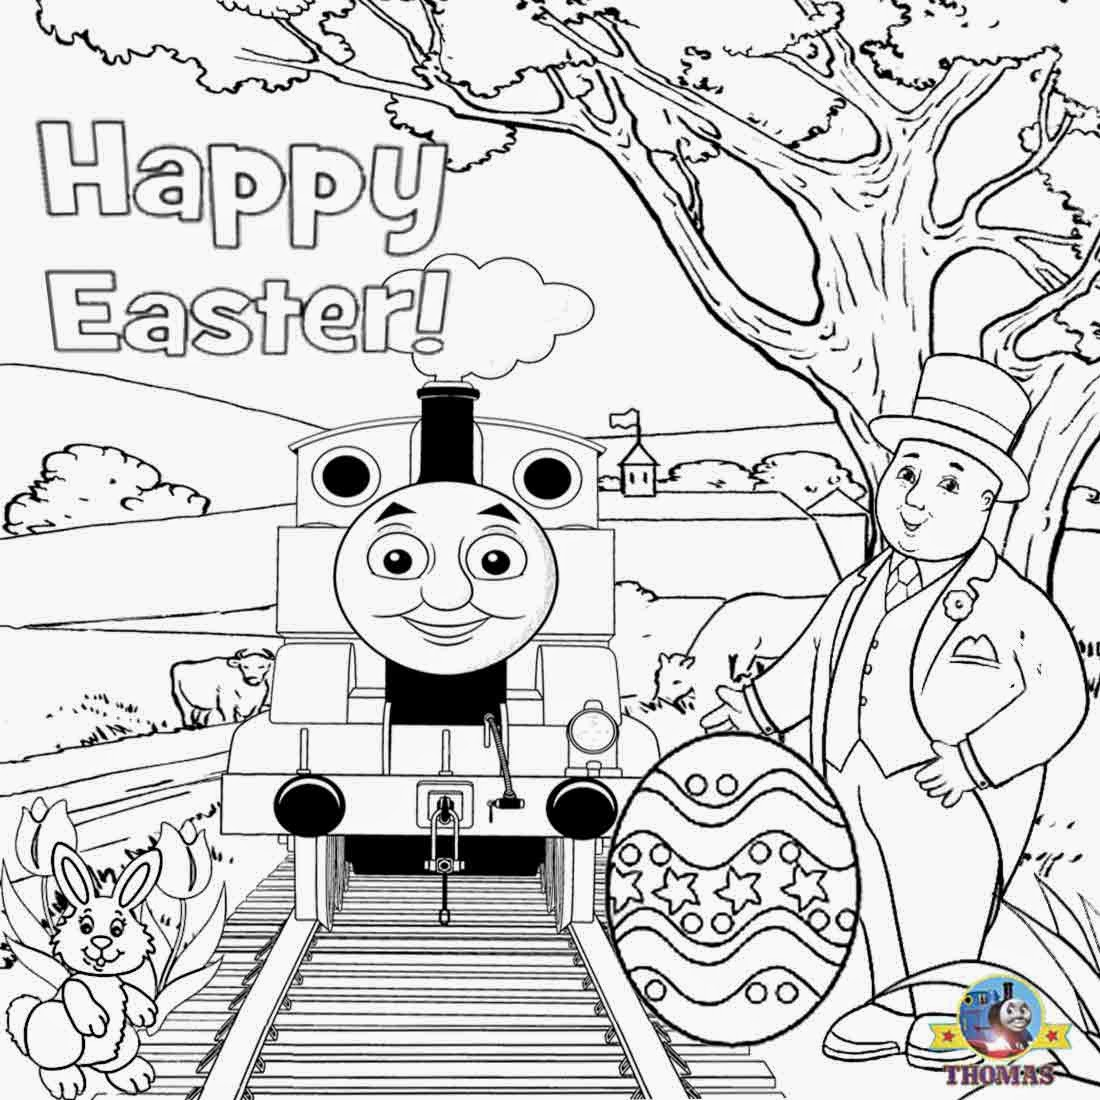 thomas and his friends coloring pages thomas and friends coloring pages getcoloringpagescom pages and coloring friends thomas his